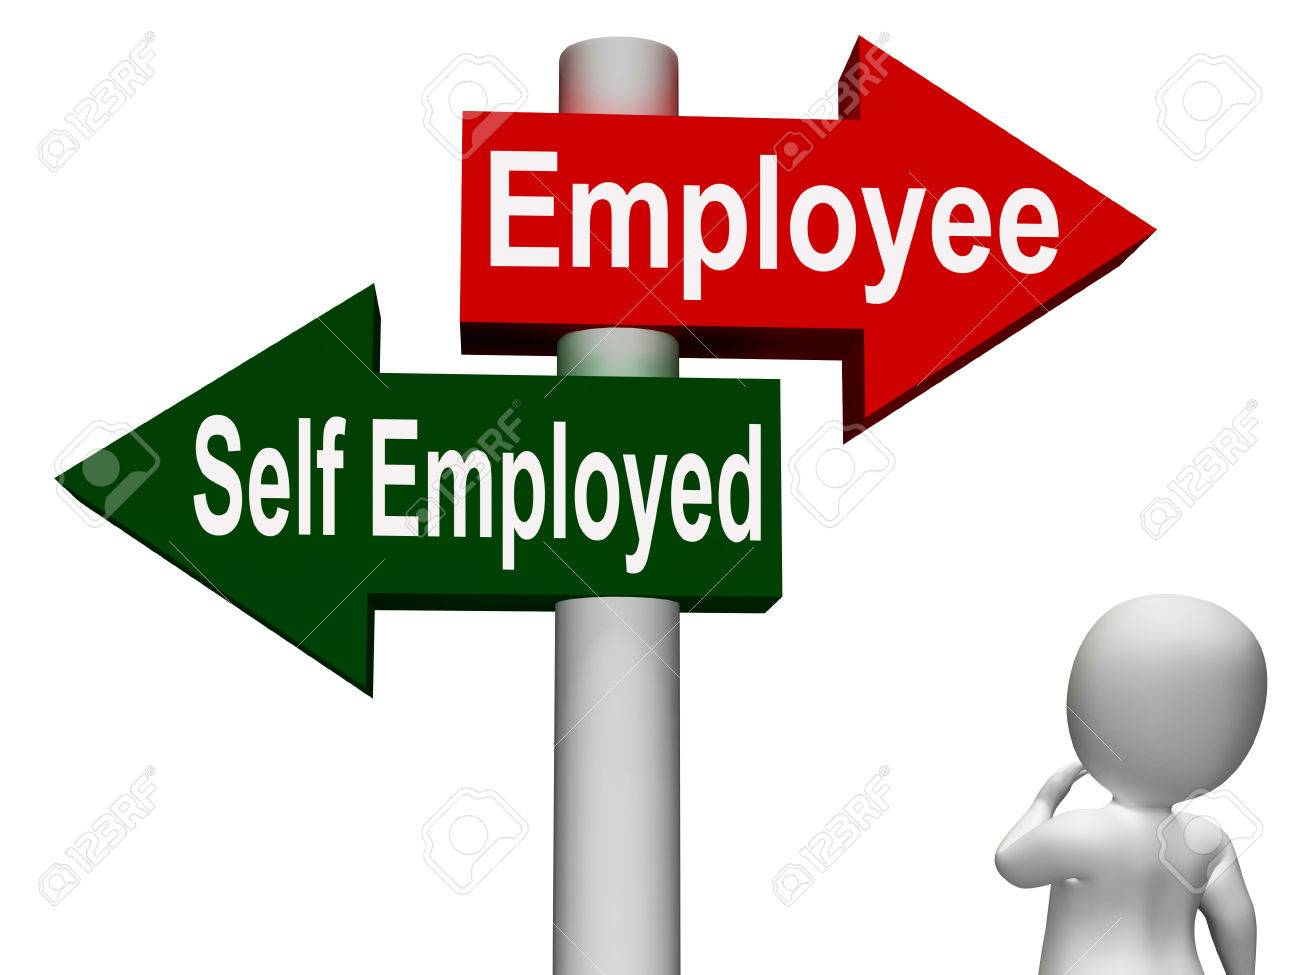 employee self employed signpost meaning choose career job choice employee self employed signpost meaning choose career job choice stock photo 26415641